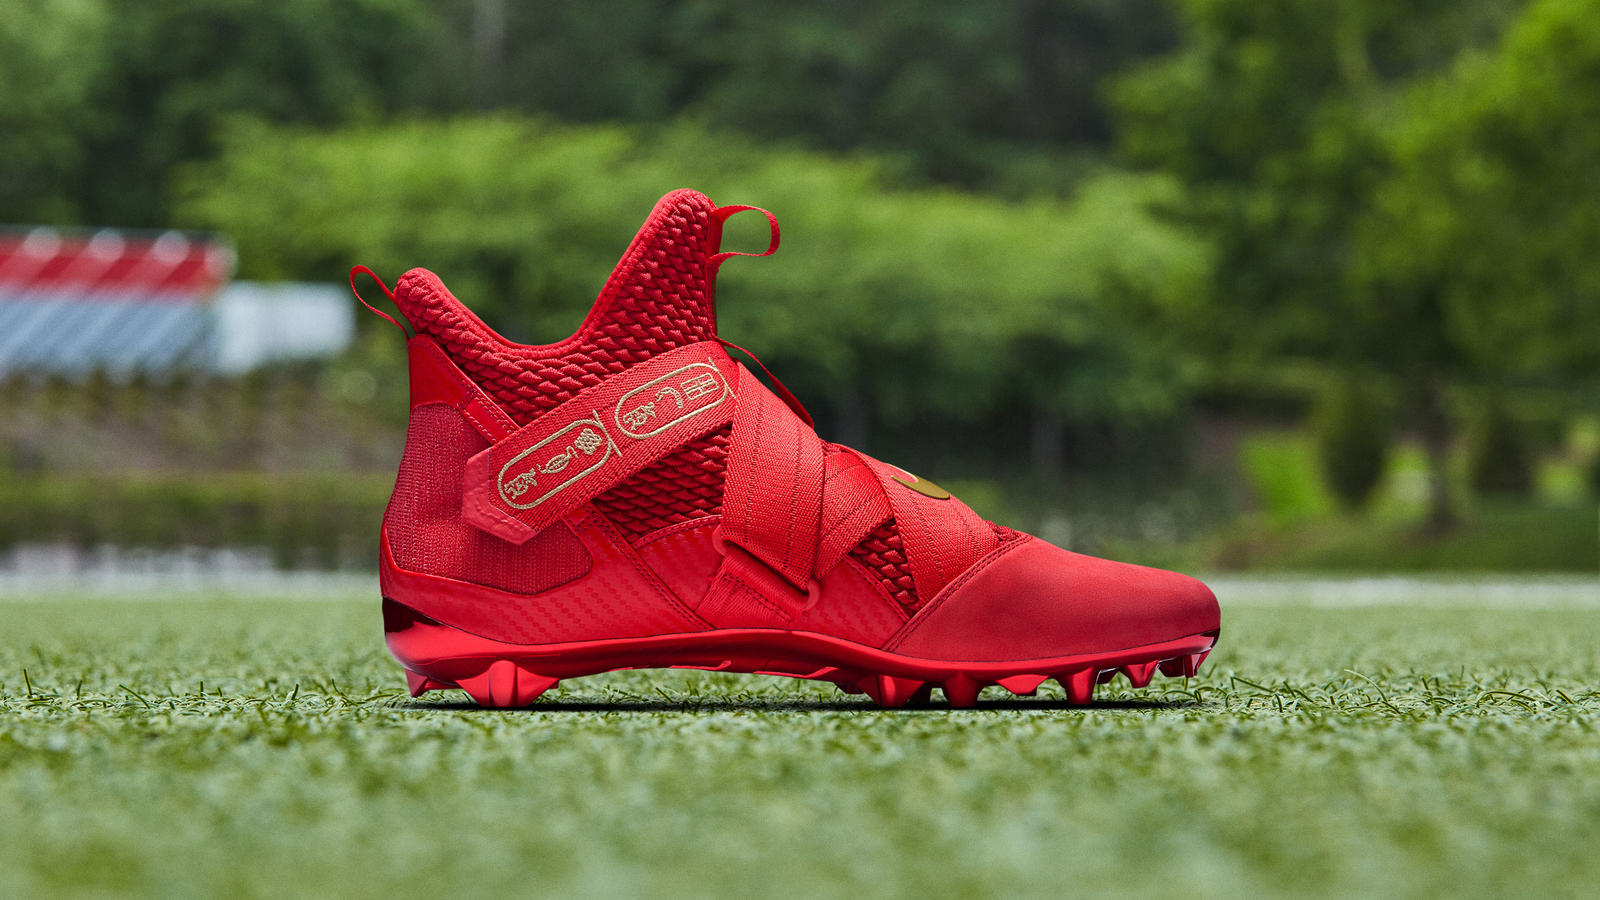 Featuredfootwear obj pregamecleats week7 10.22.18 762 re hd 1600